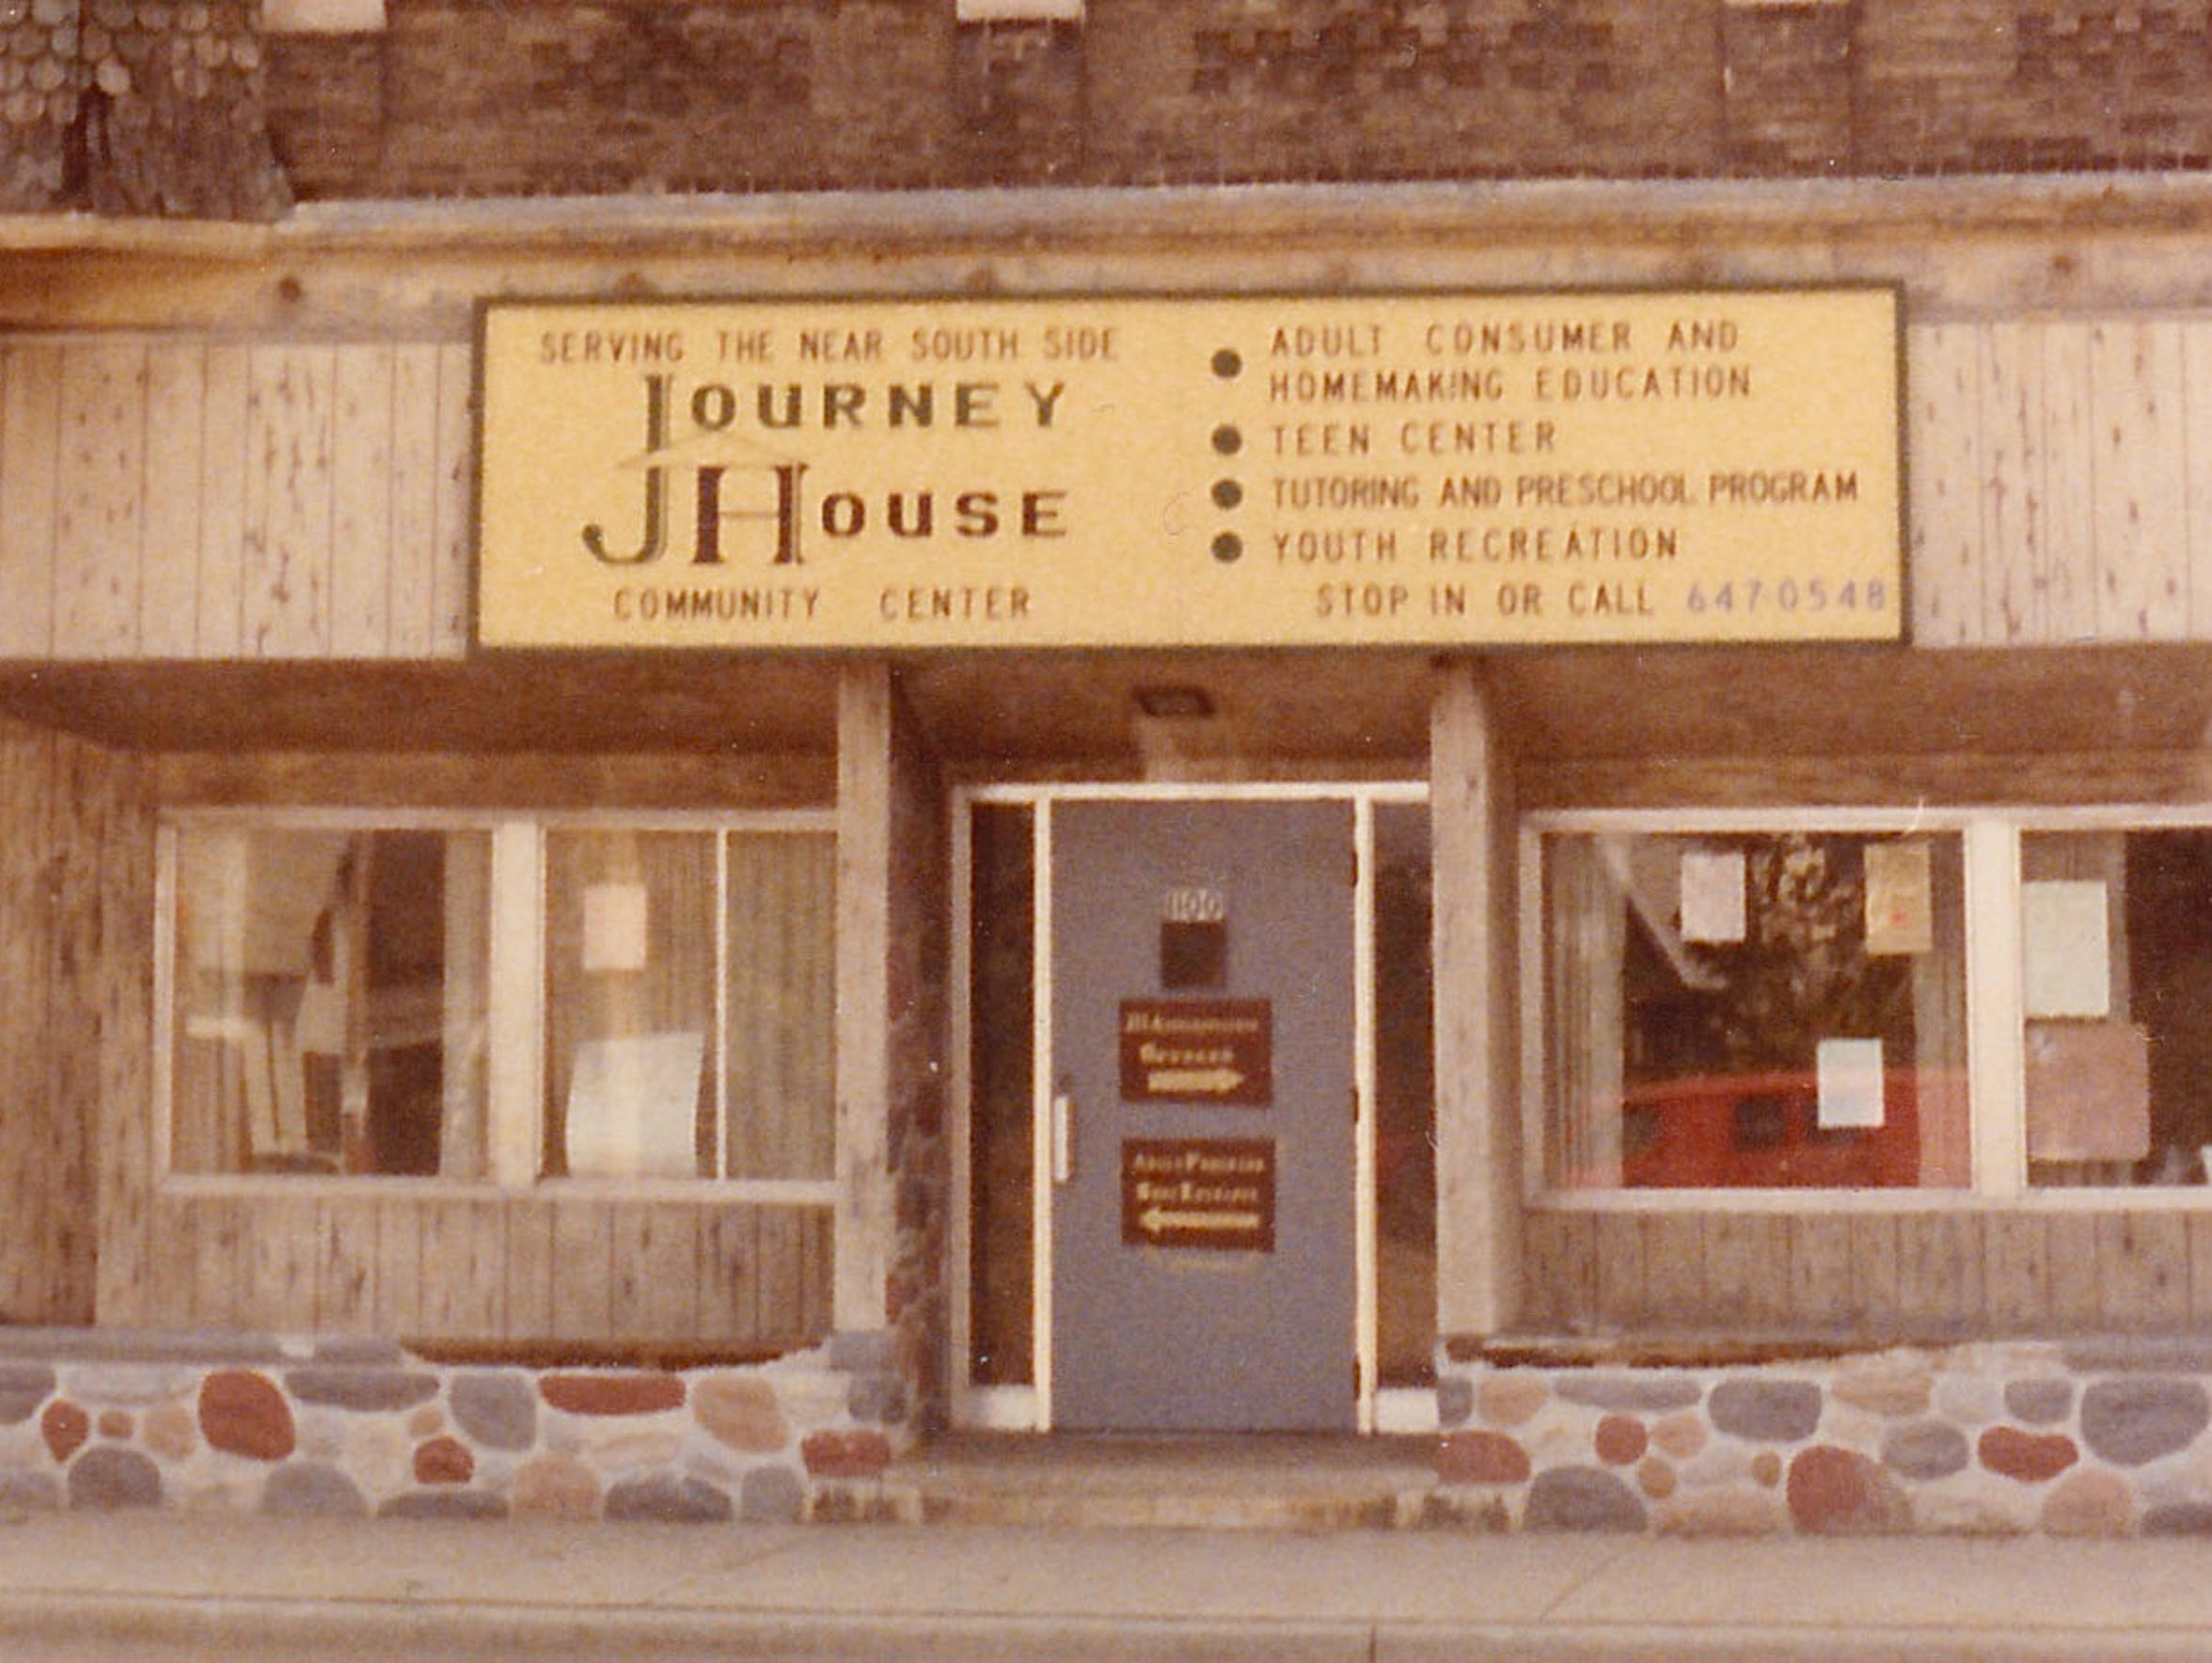 Journey House in 1971, only a couple years after its